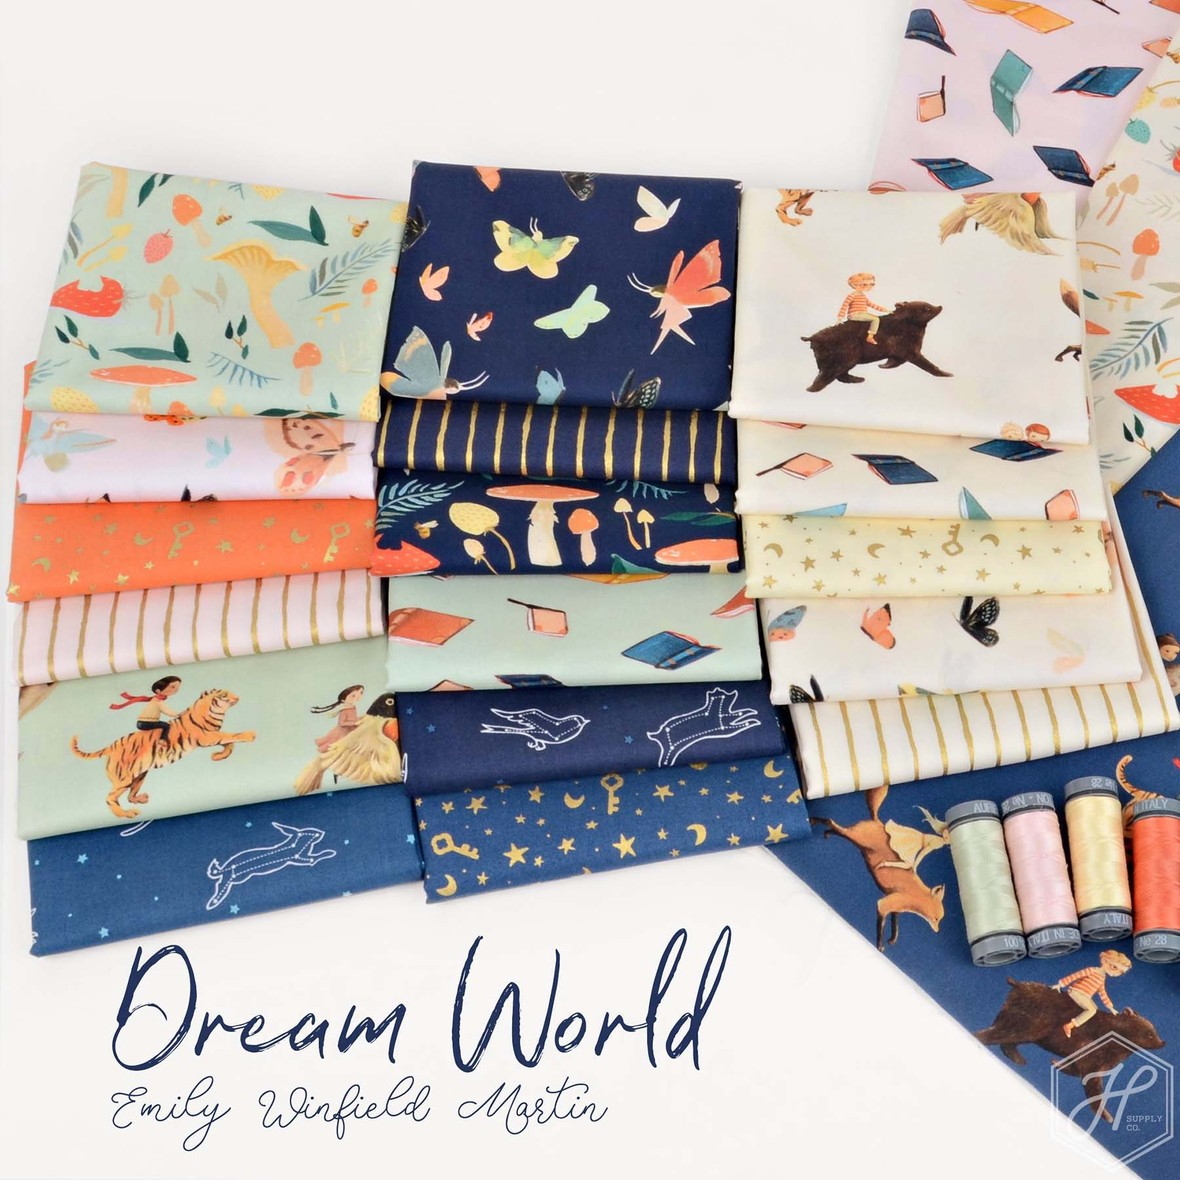 Dream World Fabric Poster Emily Winfield Martin fror Riley Blake at Hawthorne Supply Cojpg